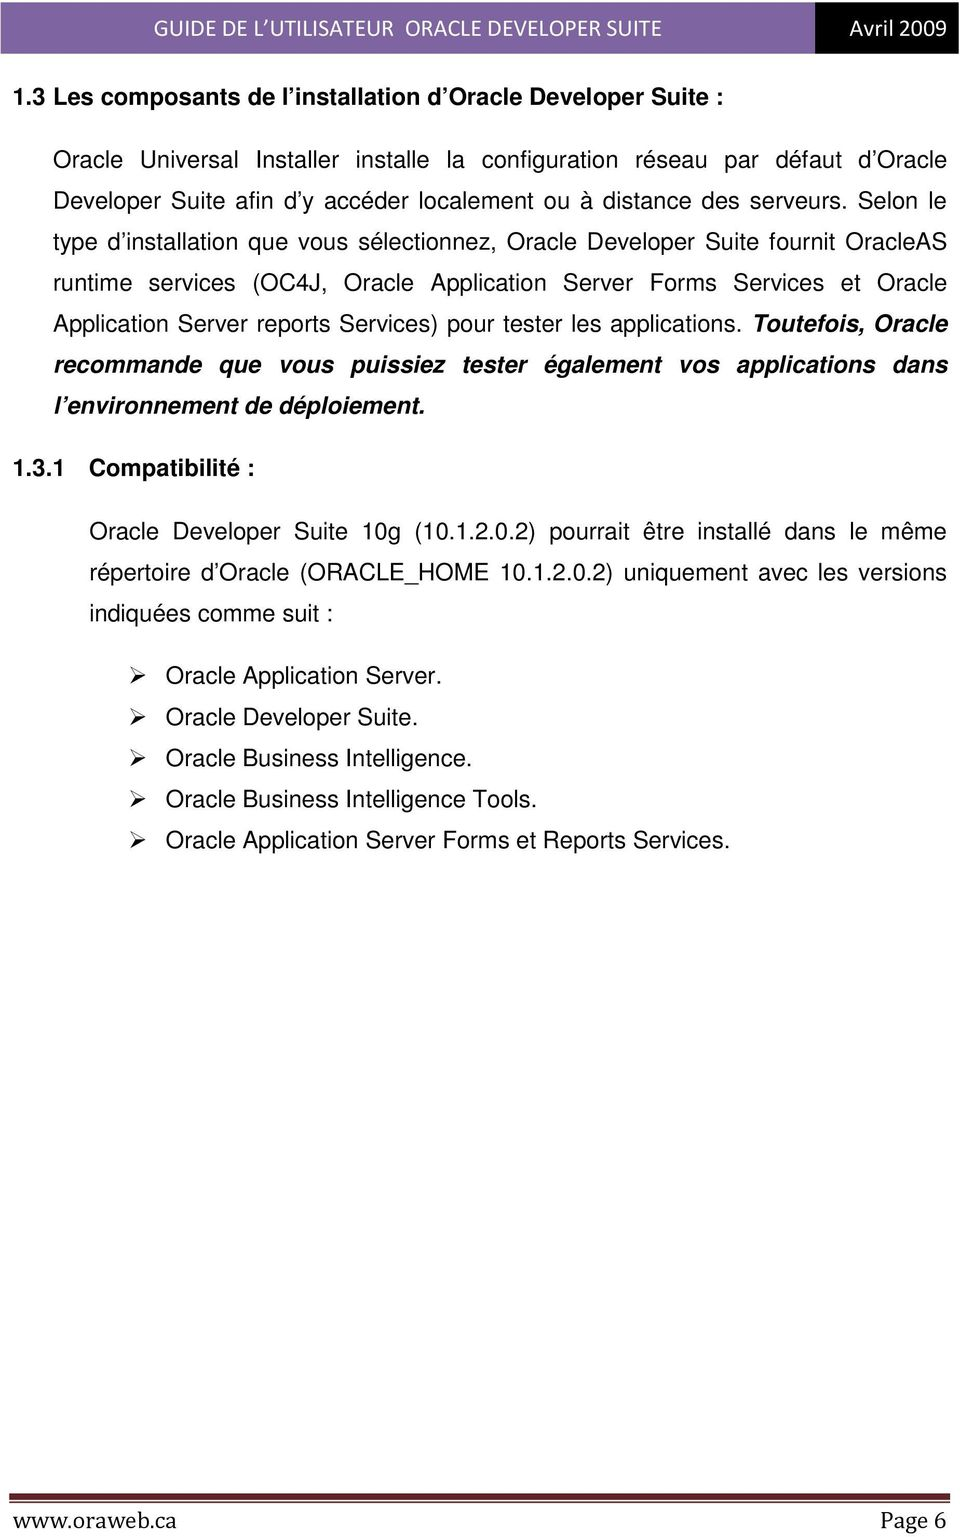 Selon le type d installation que vous sélectionnez, Oracle Developer Suite fournit OracleAS runtime services (OC4J, Oracle Application Server Forms Services et Oracle Application Server reports